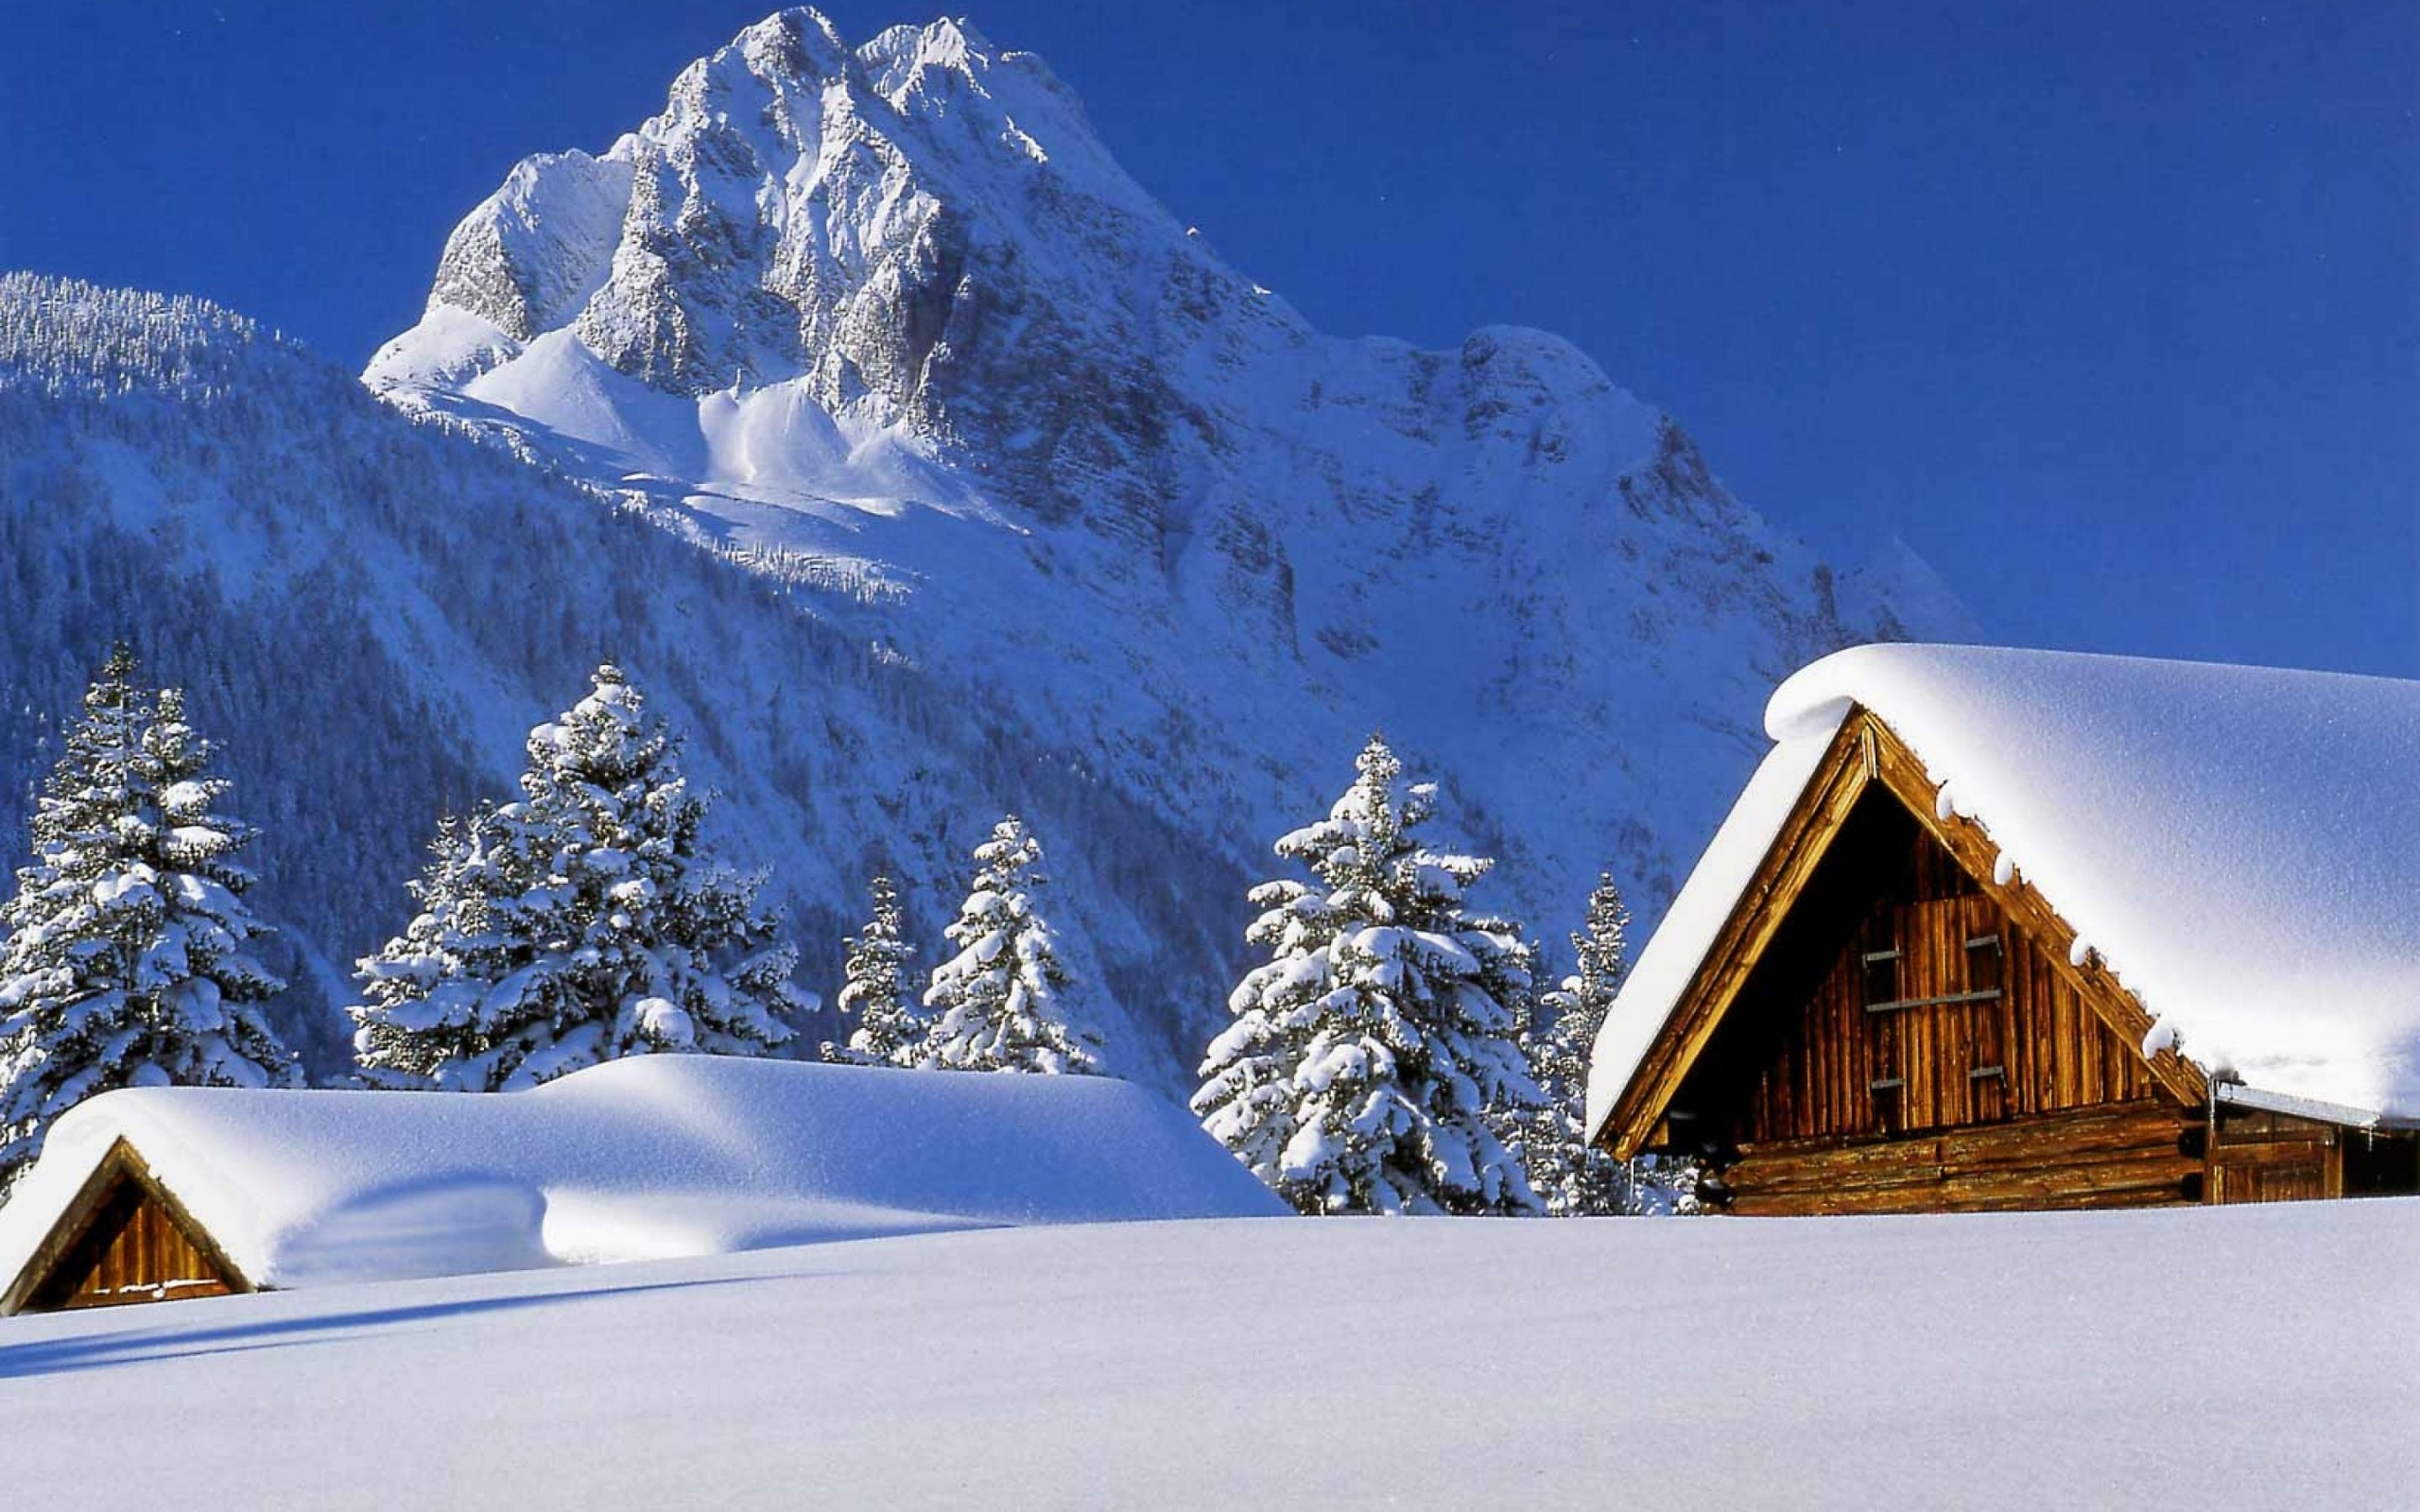 46714 download wallpaper Landscape, Winter, Nature, Mountains, Snow screensavers and pictures for free